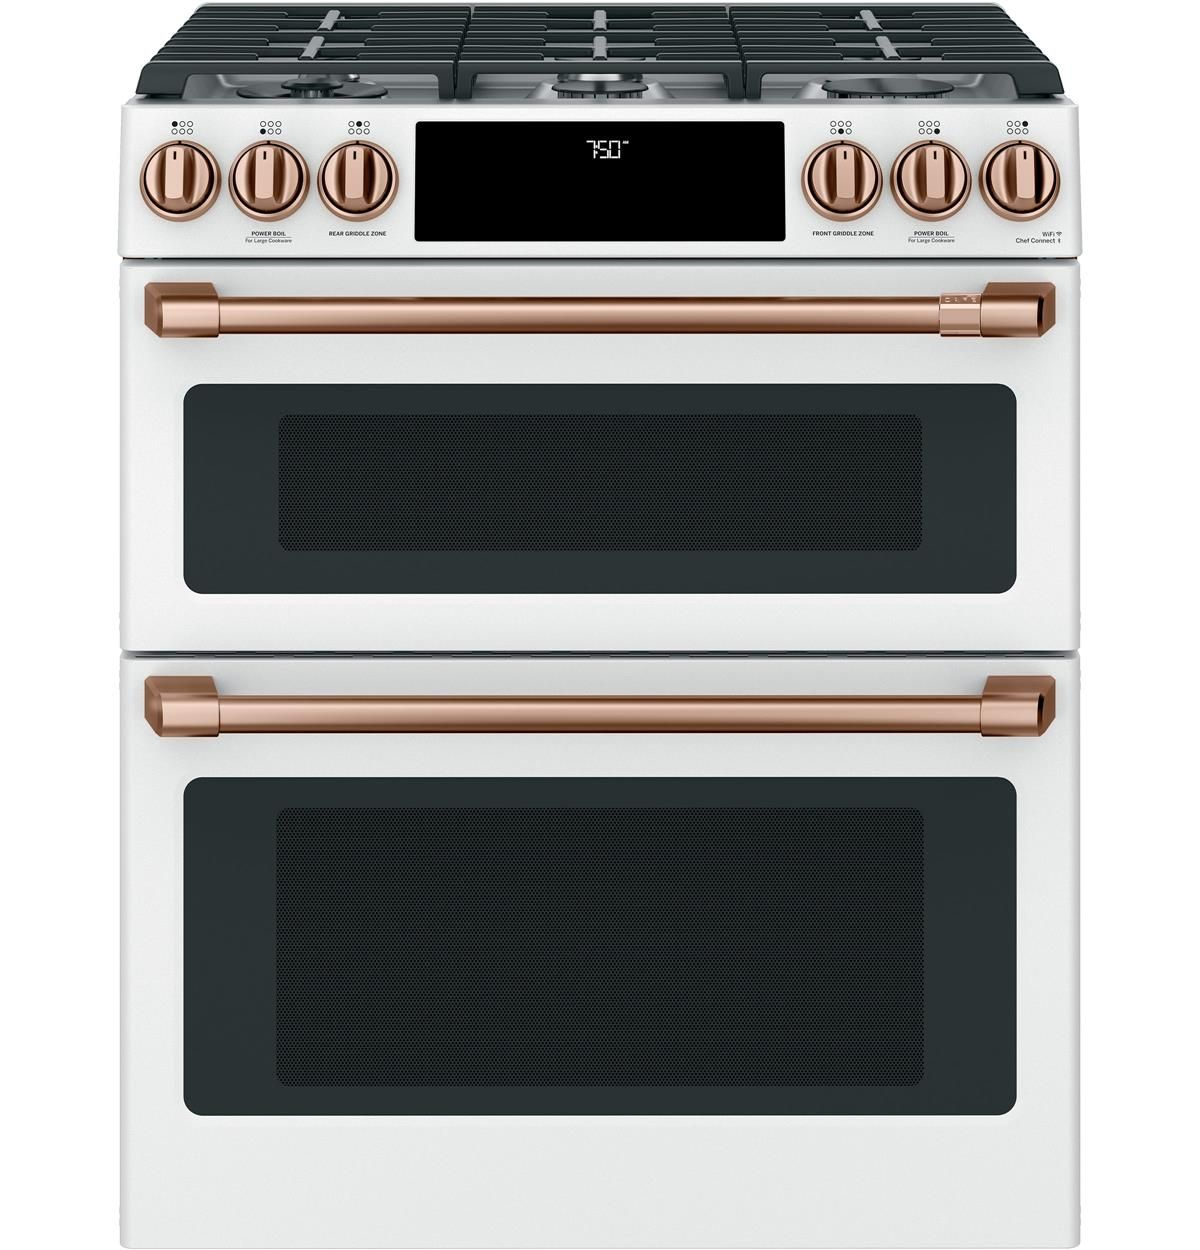 Cgs750p4mw2 Overview Cafe 30 Slide In Front Control Gas Double Oven With Convection Rang Gas Range Double Oven Double Oven Electric Range Double Oven Range